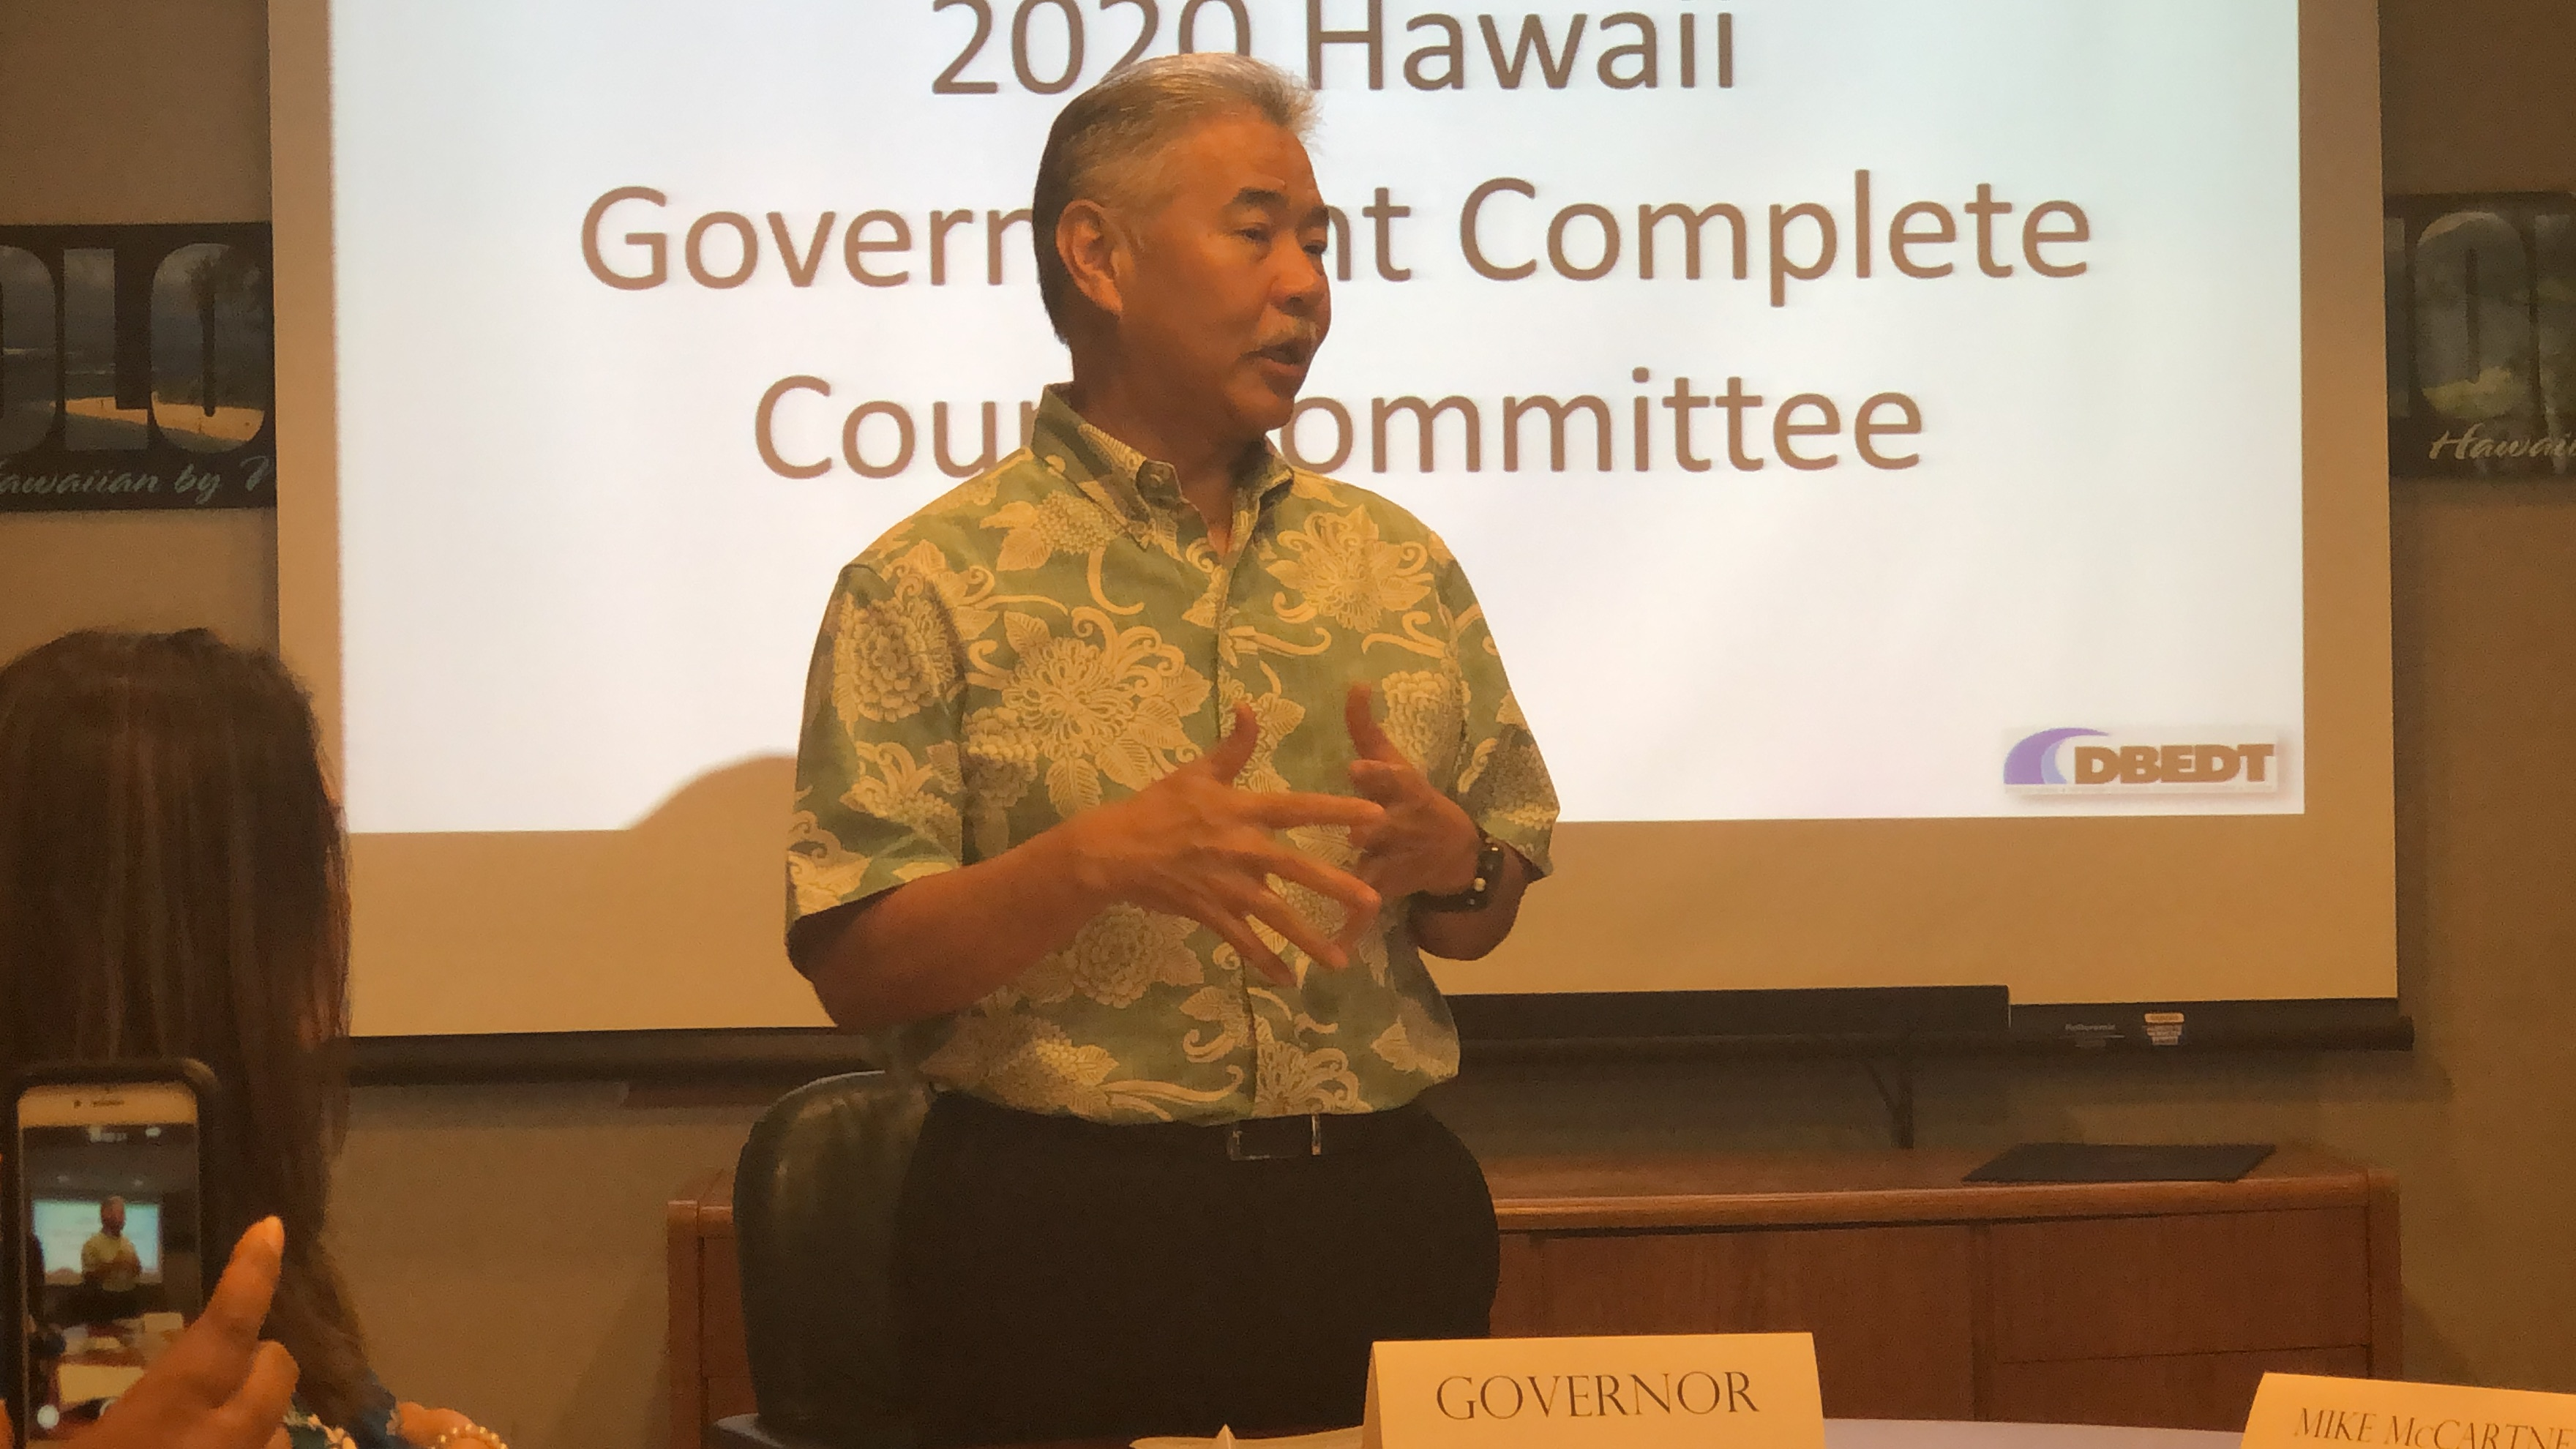 Governor Ige with HGCCC members